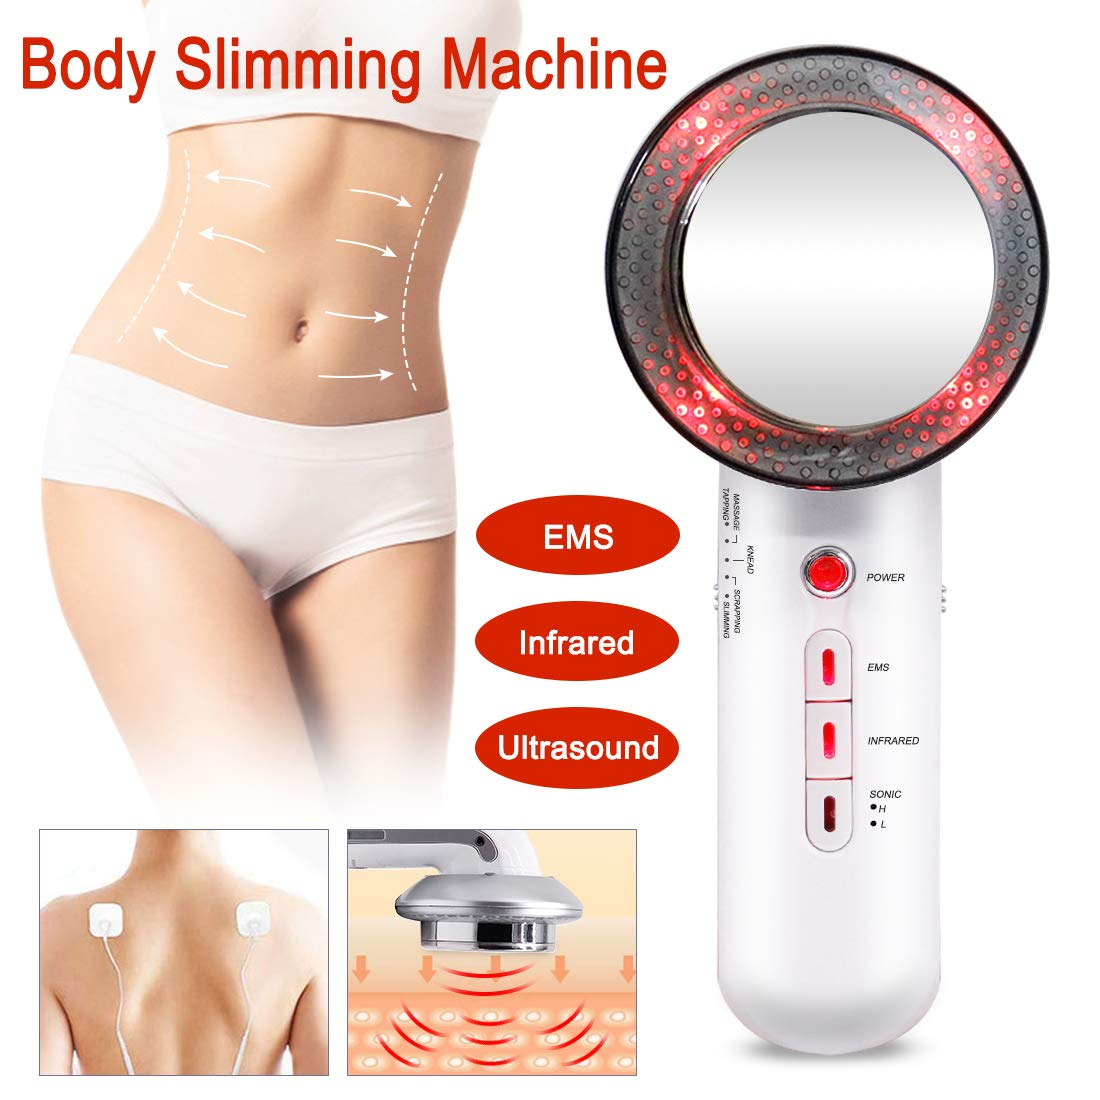 EMS Burn Fat Machine 3 in 1 Multifunctional Infared Body Shaping Massager High Frequency Vibration Sonic Fat Burning Device for Arm Leg Hip Facial Skin Care(US Inventory) by FAMI HELPER